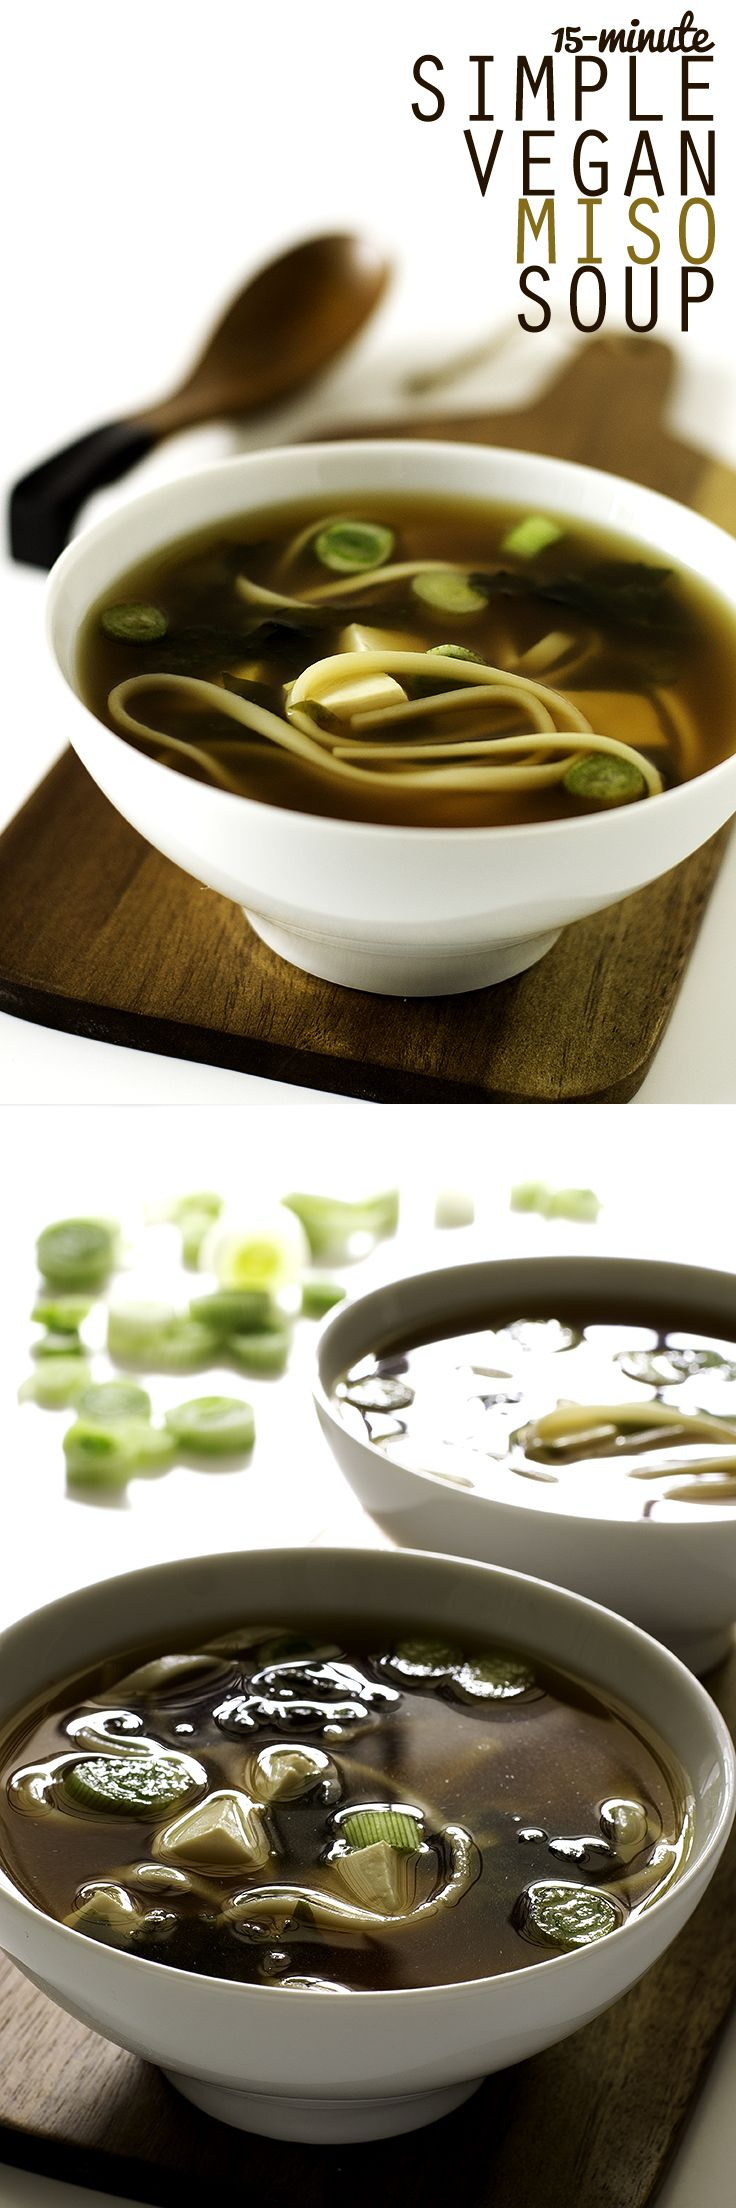 15 Minute Simple Vegan Miso Soup #vegan #recipe